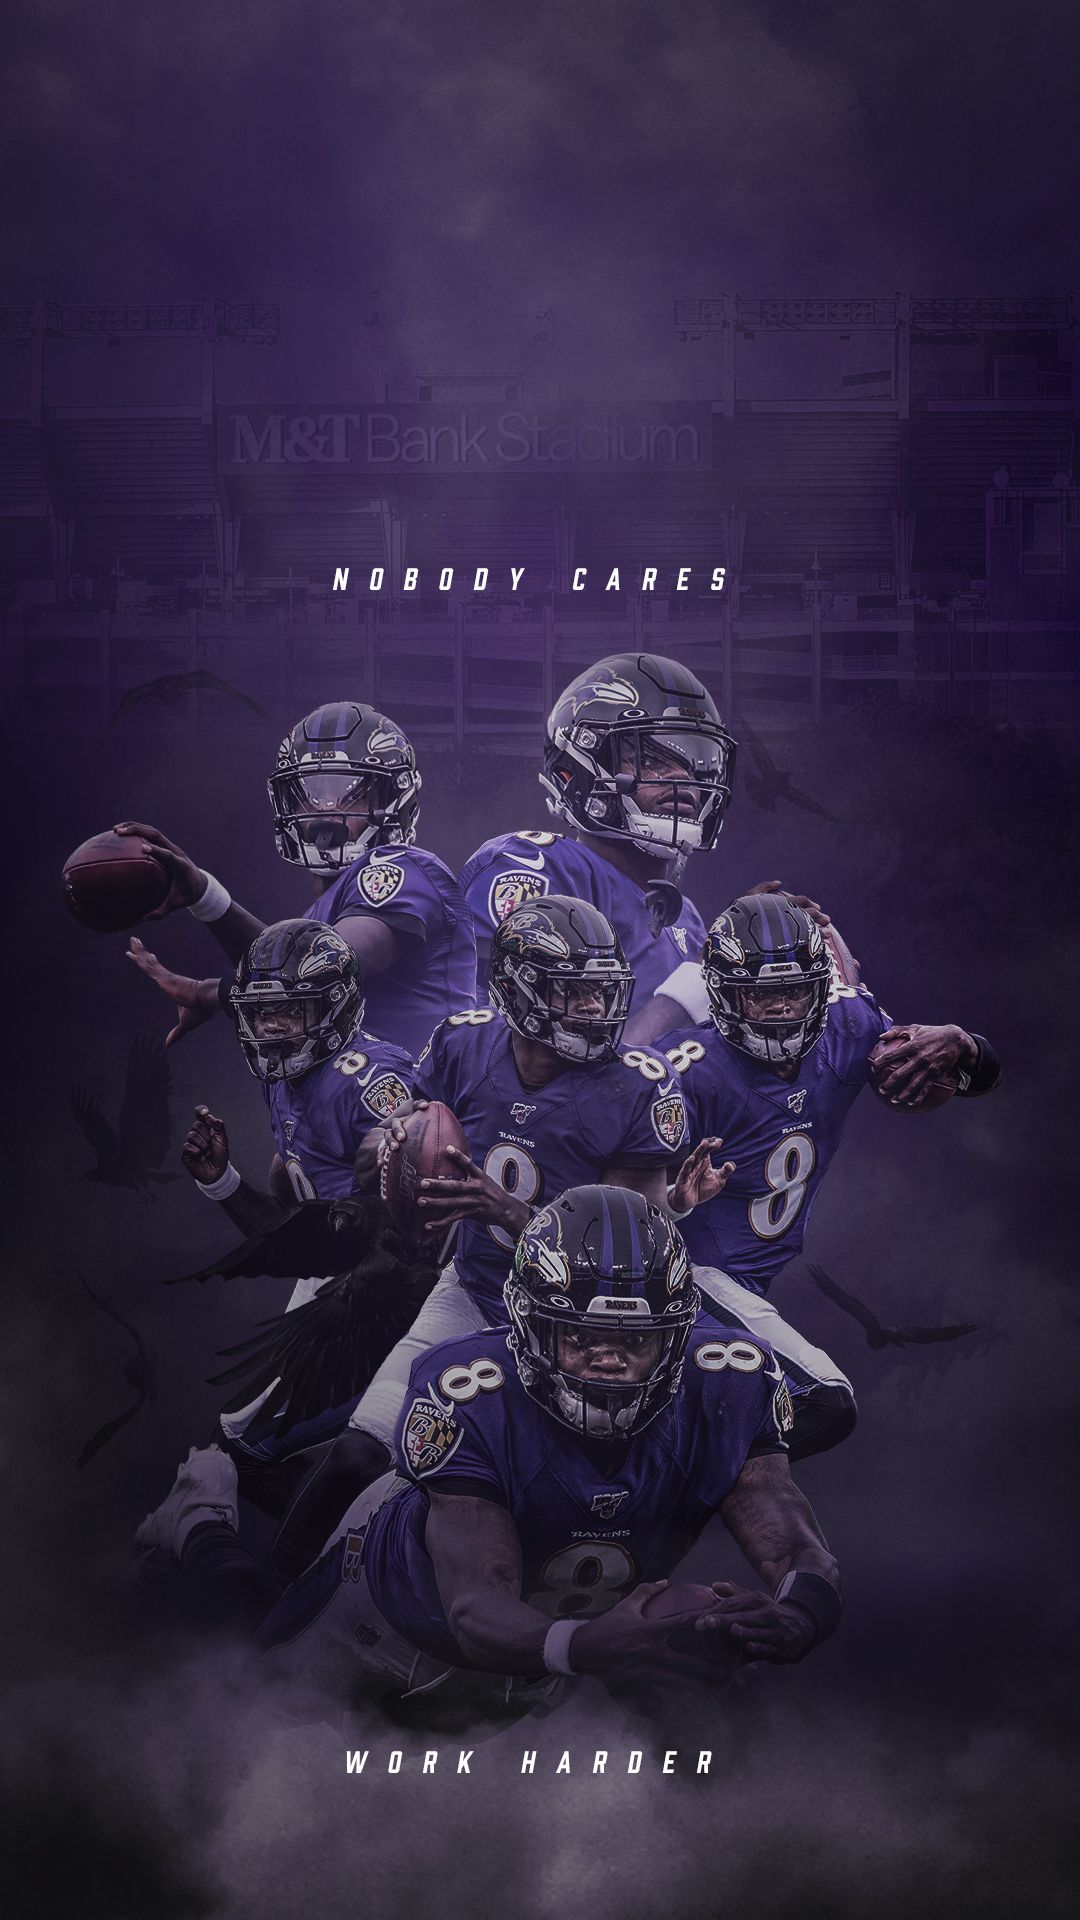 Pin By My Info On Baltimore Ravens Lamar Jackson Wallpaper Lamar Jackson Ravens Football